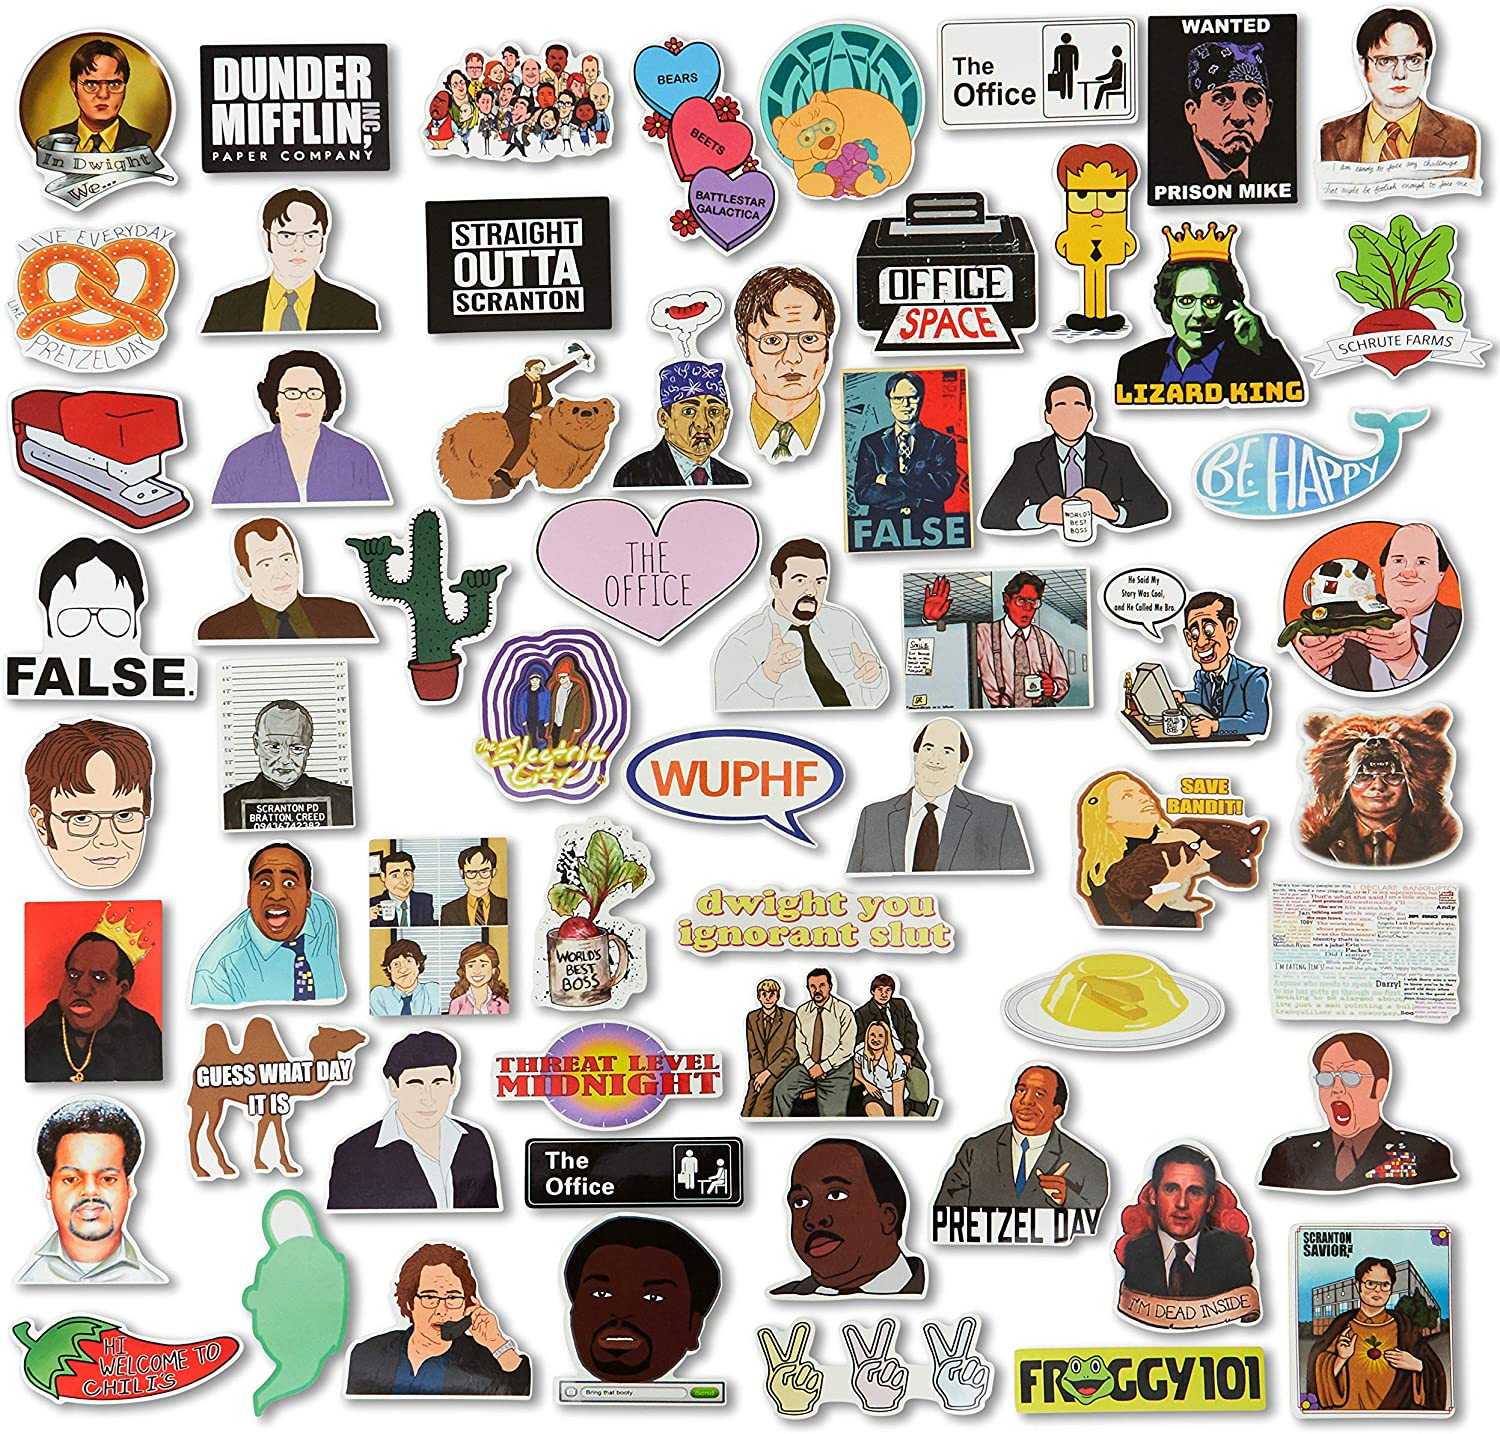 The Office Stickers - Hit TV Show - 124 Stickers (2 of Each) - Vinyl Sticker Pack - Office Memes - Laptop Decoration - Waterbottles/Computer - VSCO Decals - Funny Stickers - The Office Characters